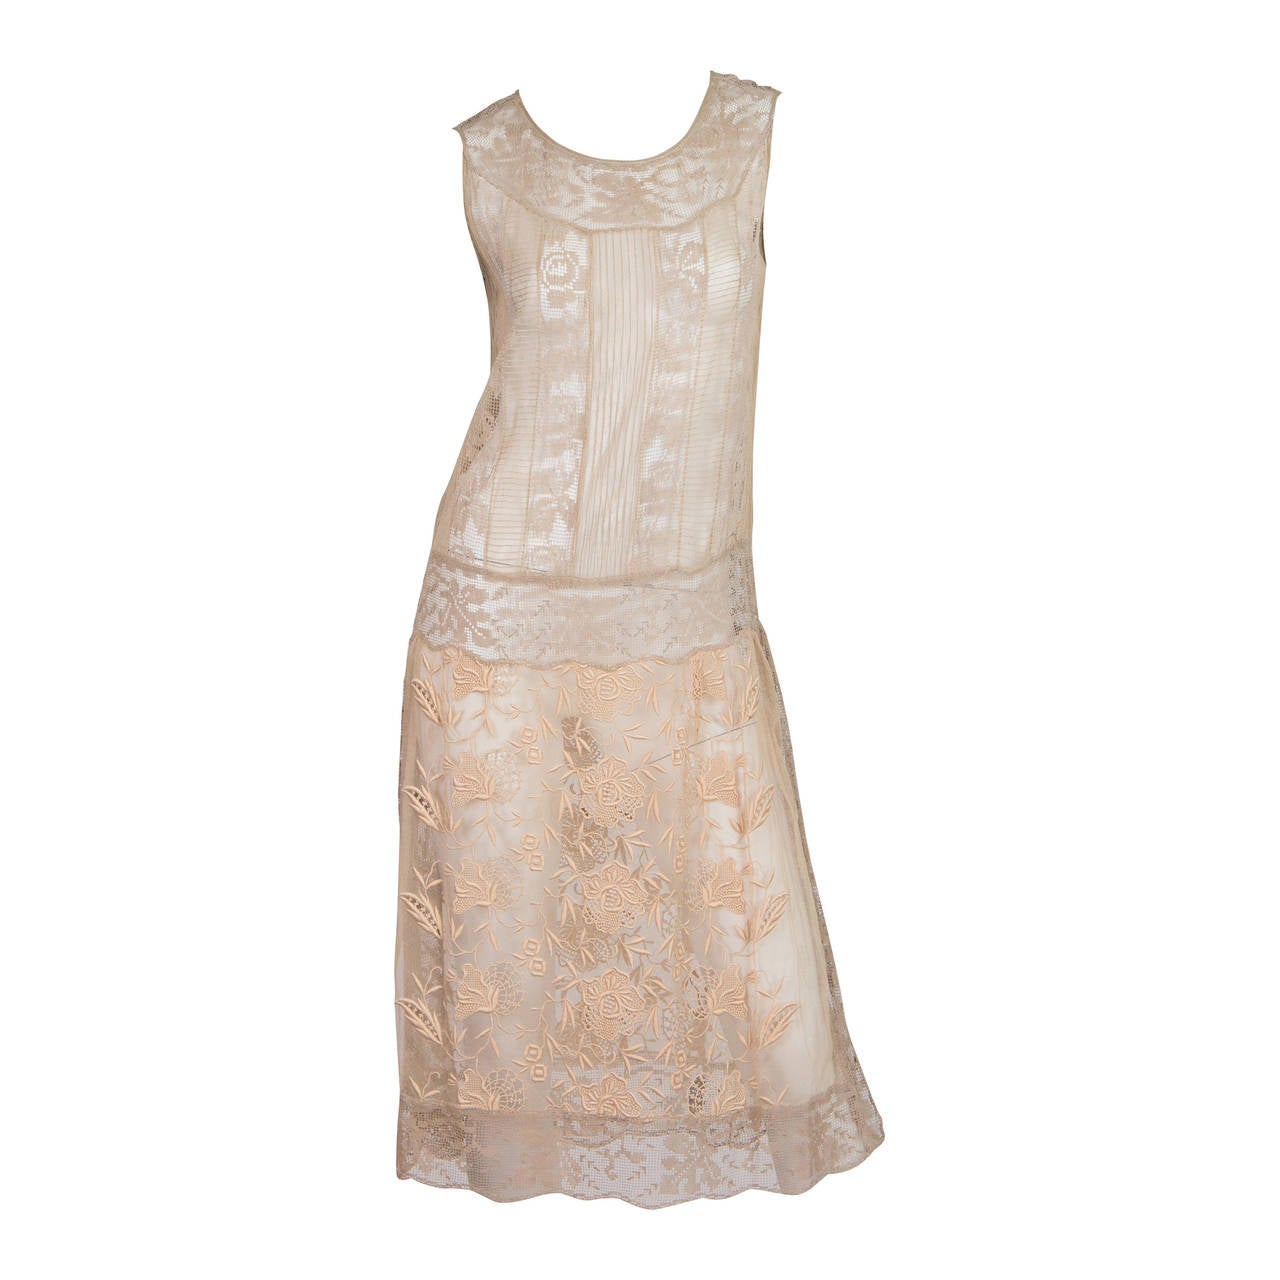 20s Handmade Lace and Embroidered Tea Dress 1